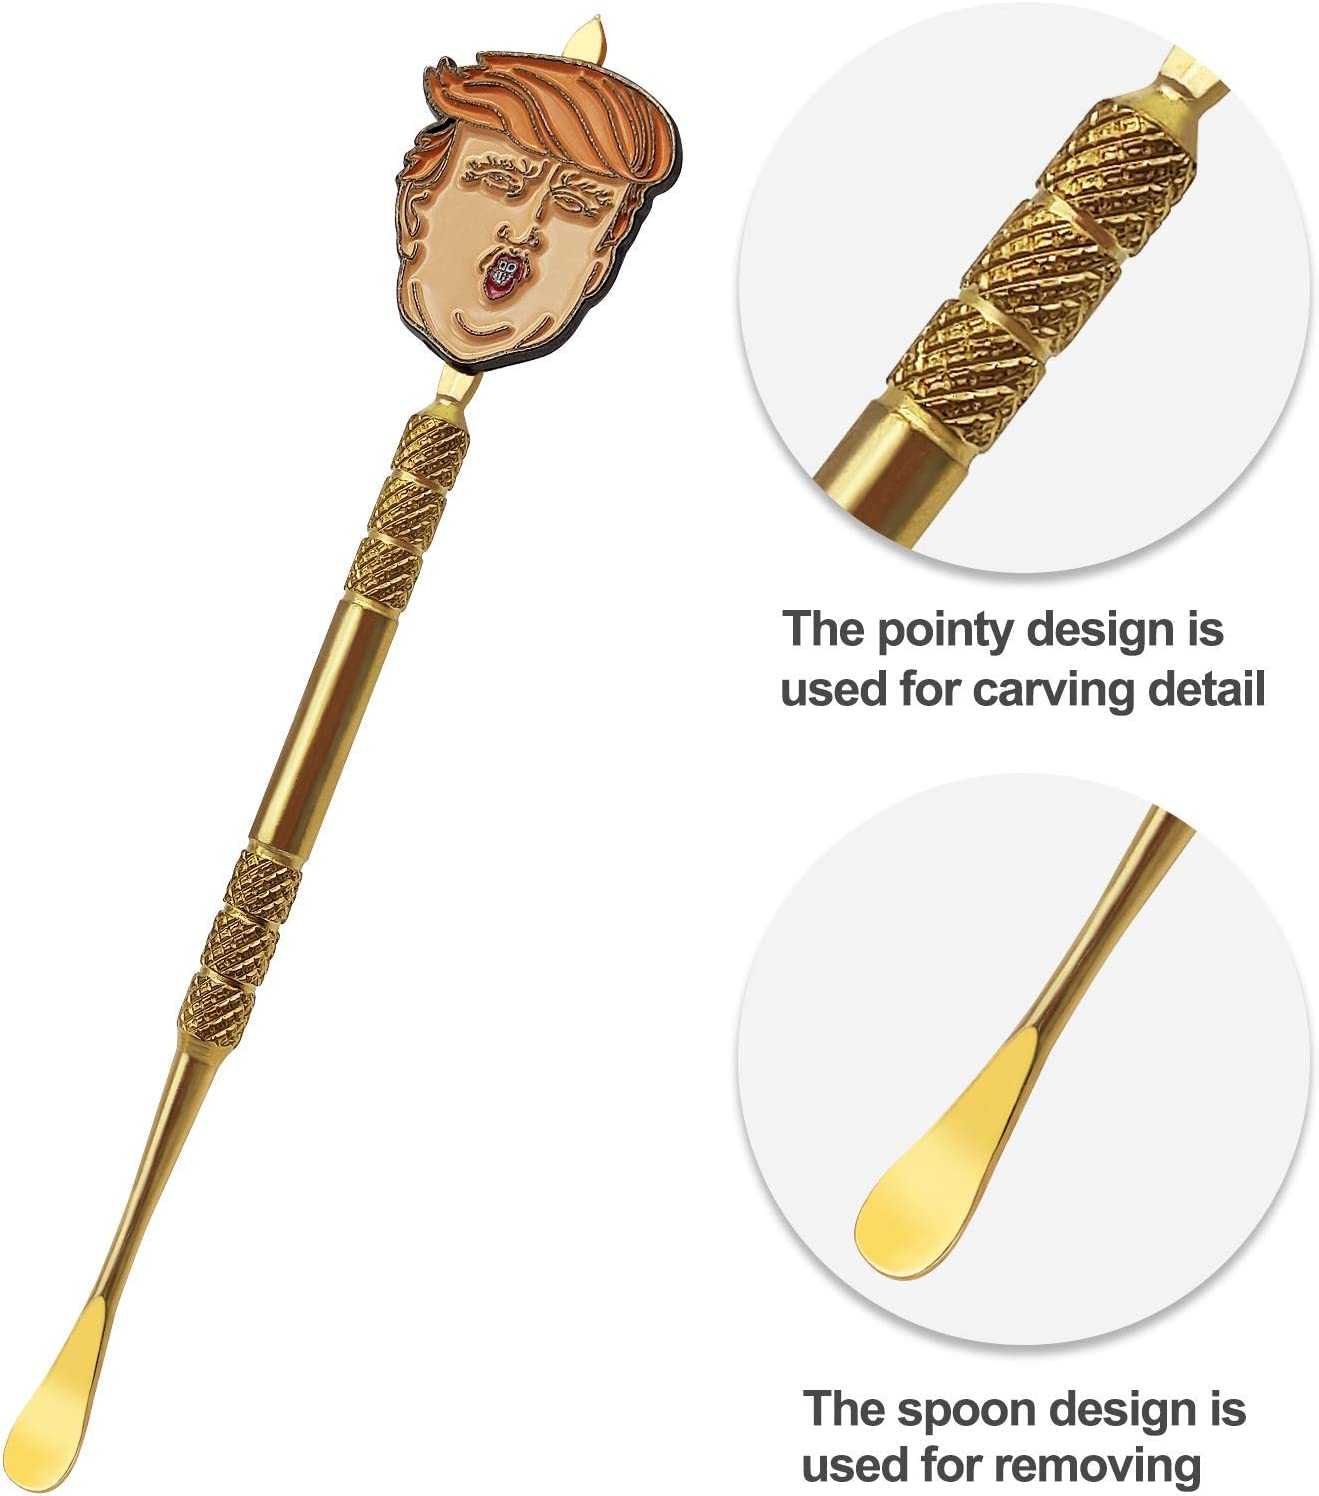 Trump Toy Gift Stainless Steel Wax Sculpting Tool Gold) 2 Pack 4.7 Inch Wax Carving Tool